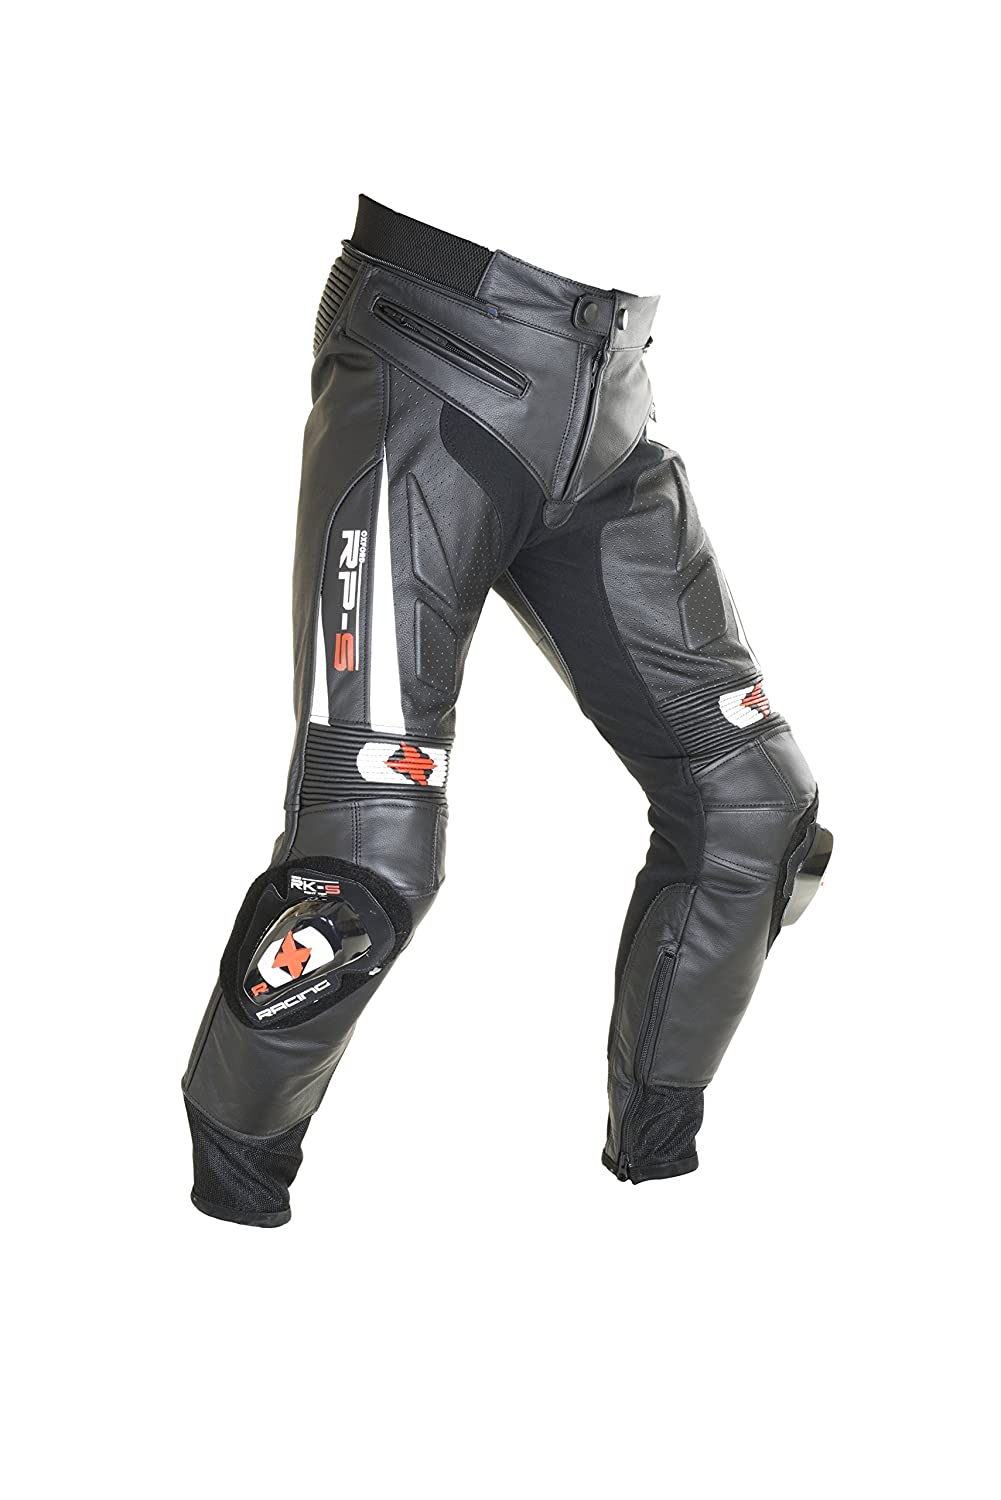 Amazon.com: Oxford rp-s piel Pant: Automotive